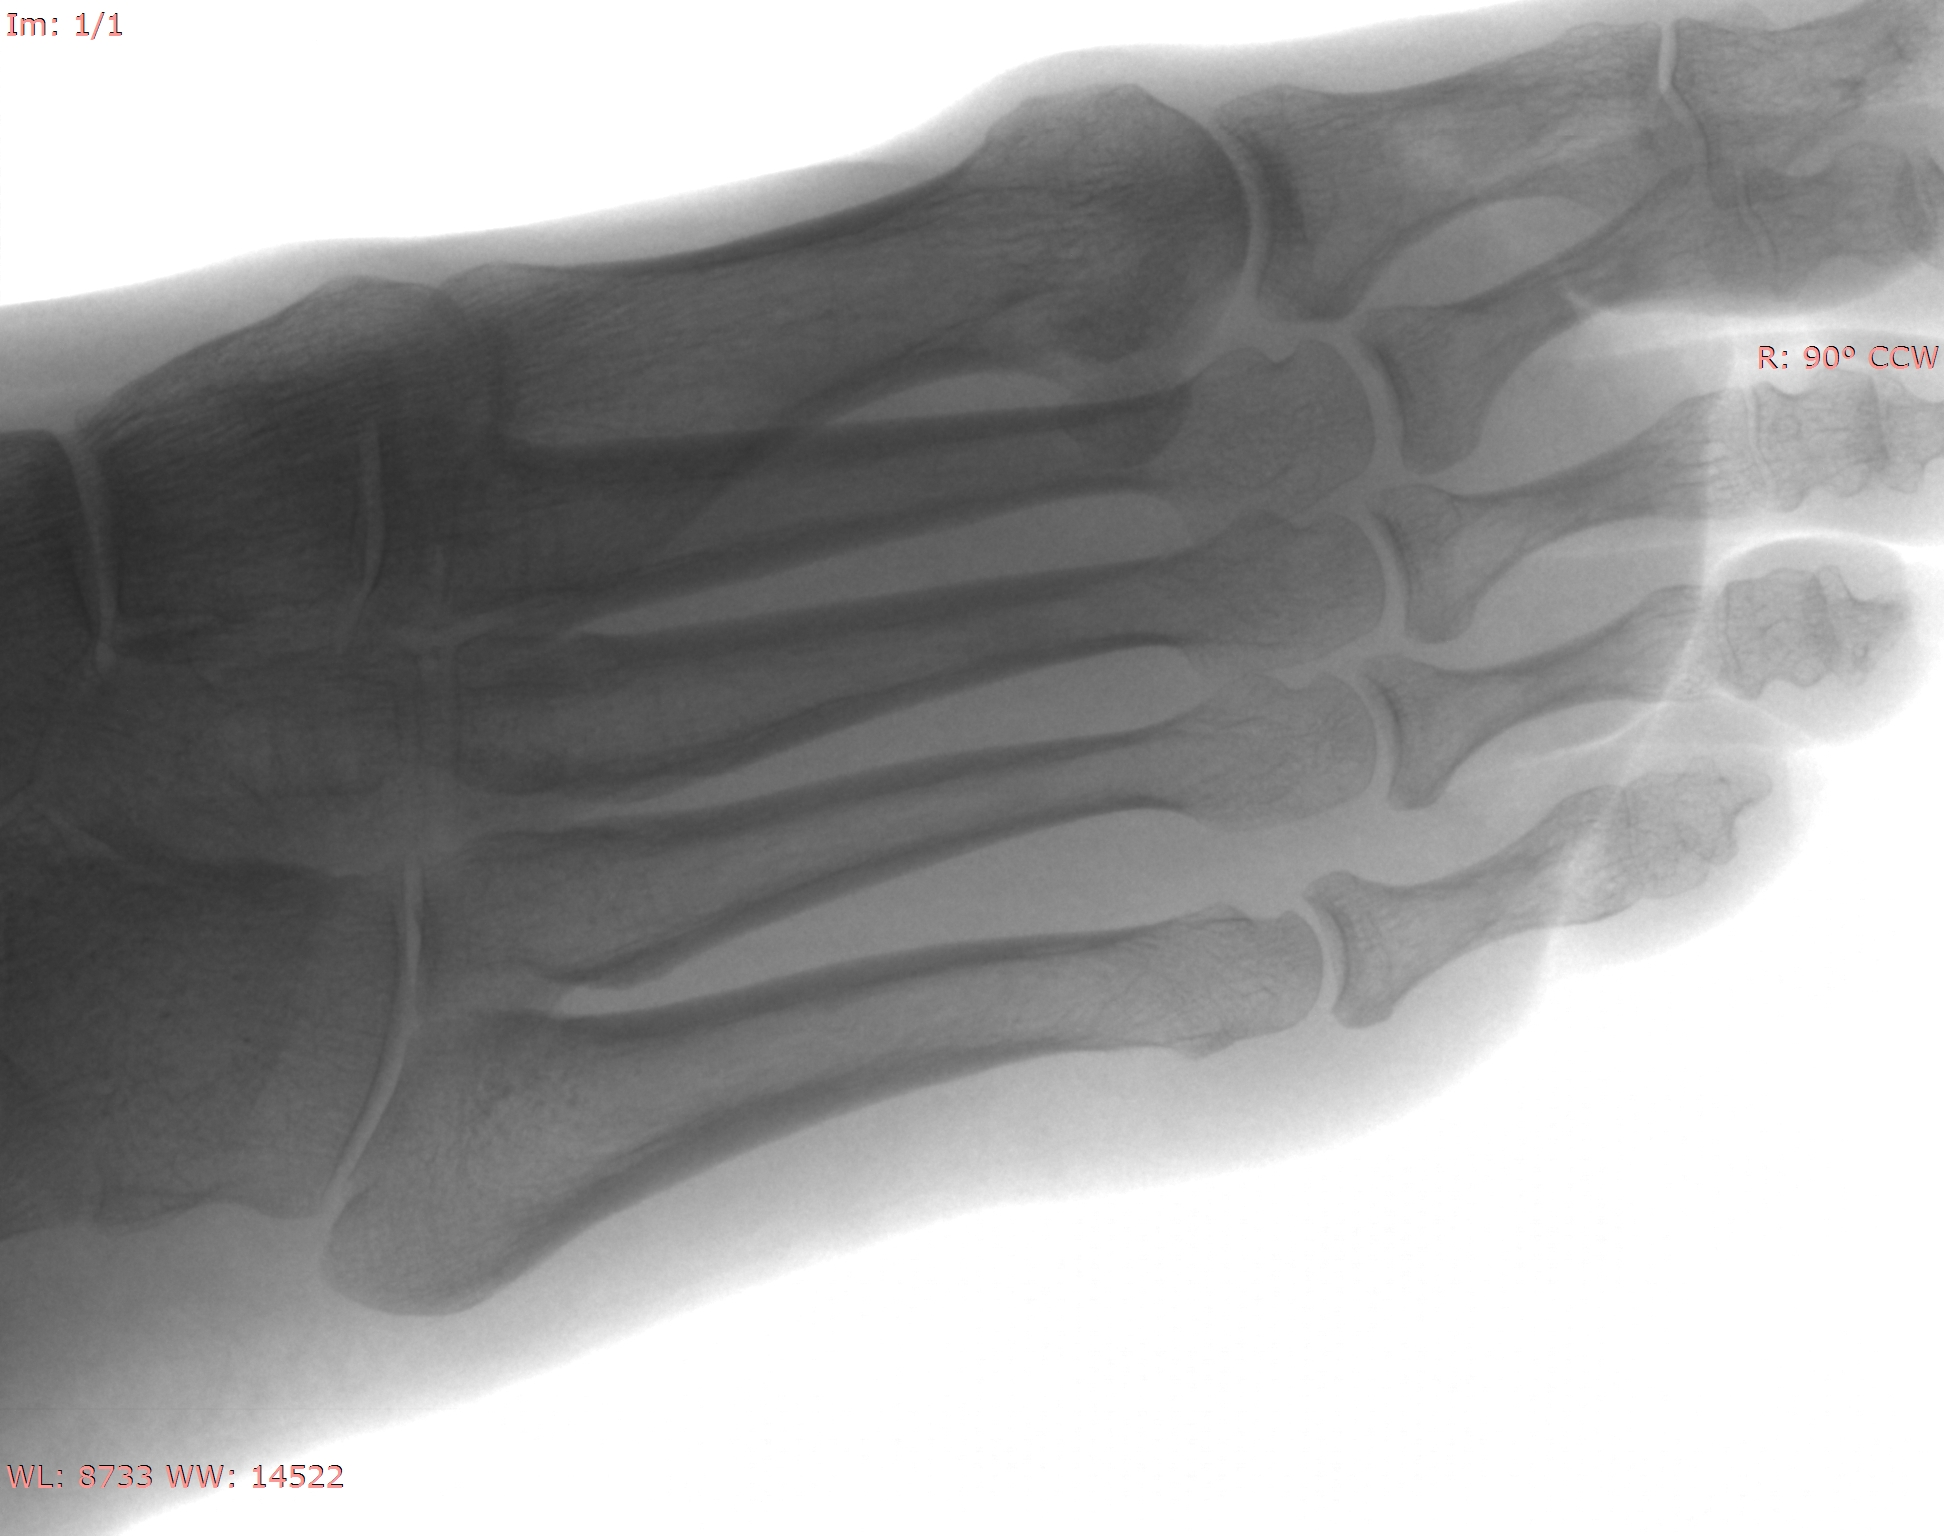 Female Foot